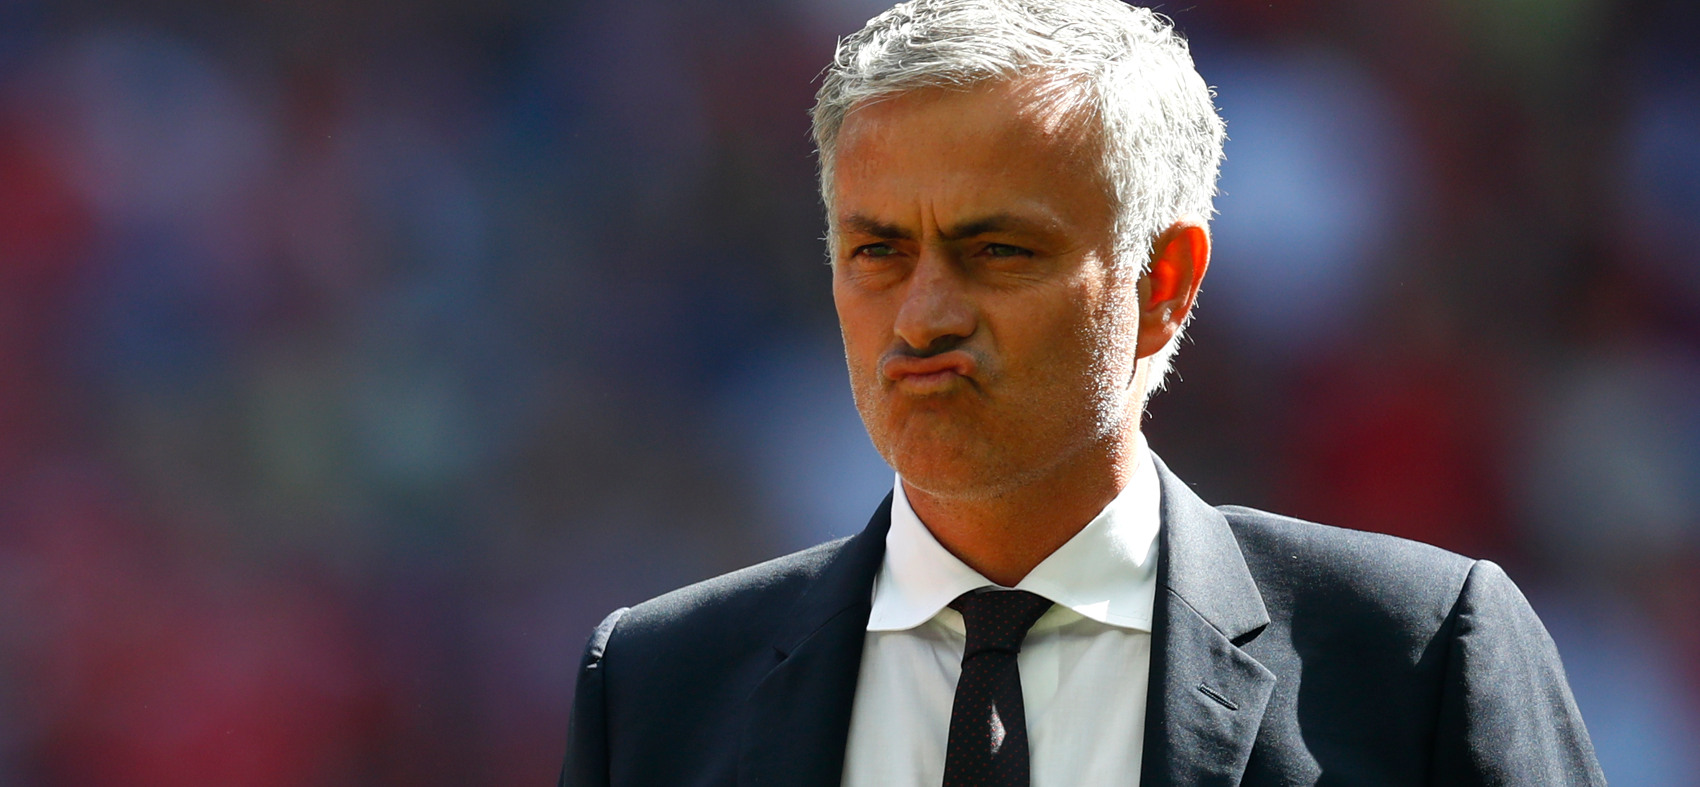 → Why did Chelsea and Aston Villa have a Double Gameweek 1 and a Blank Gameweek 3?